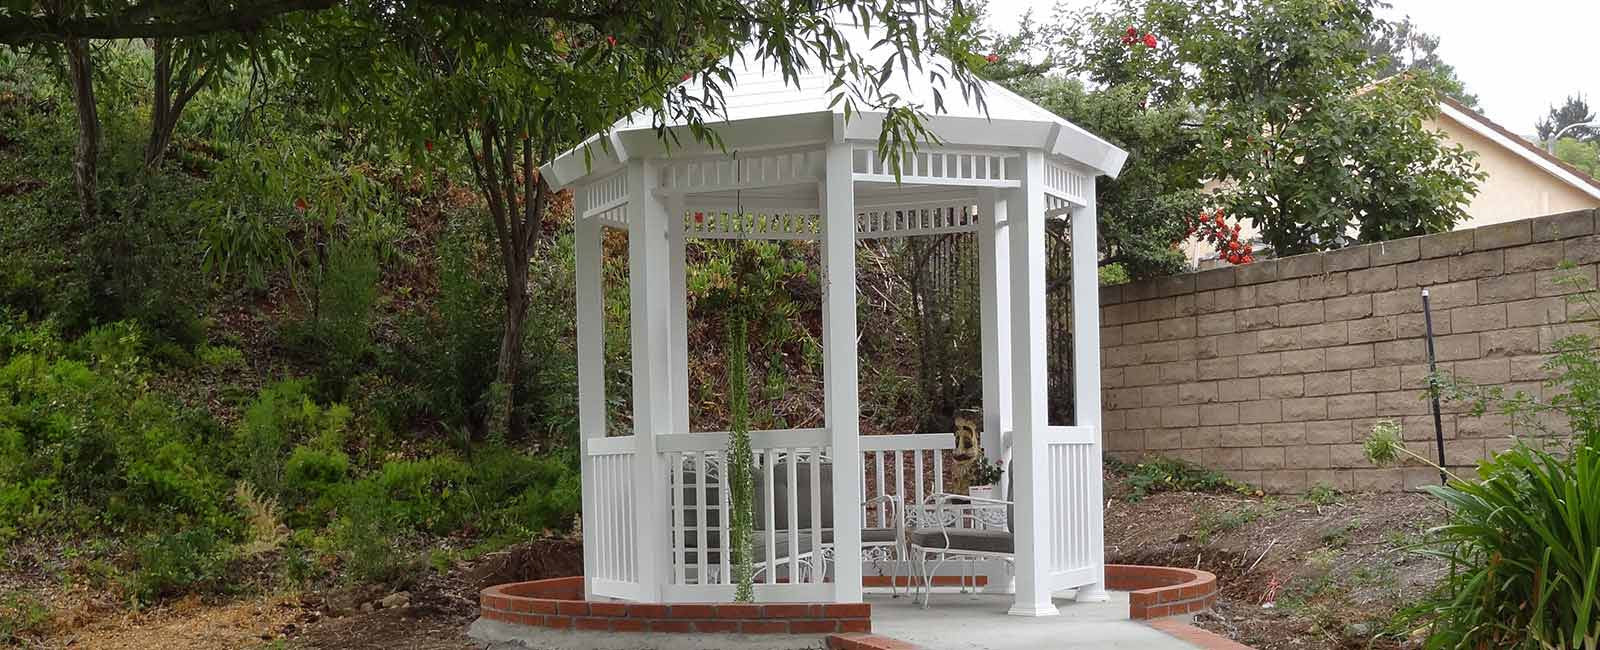 VINYL GAZEBOS & ARBORS ENHANCE YOUR PROPERTY